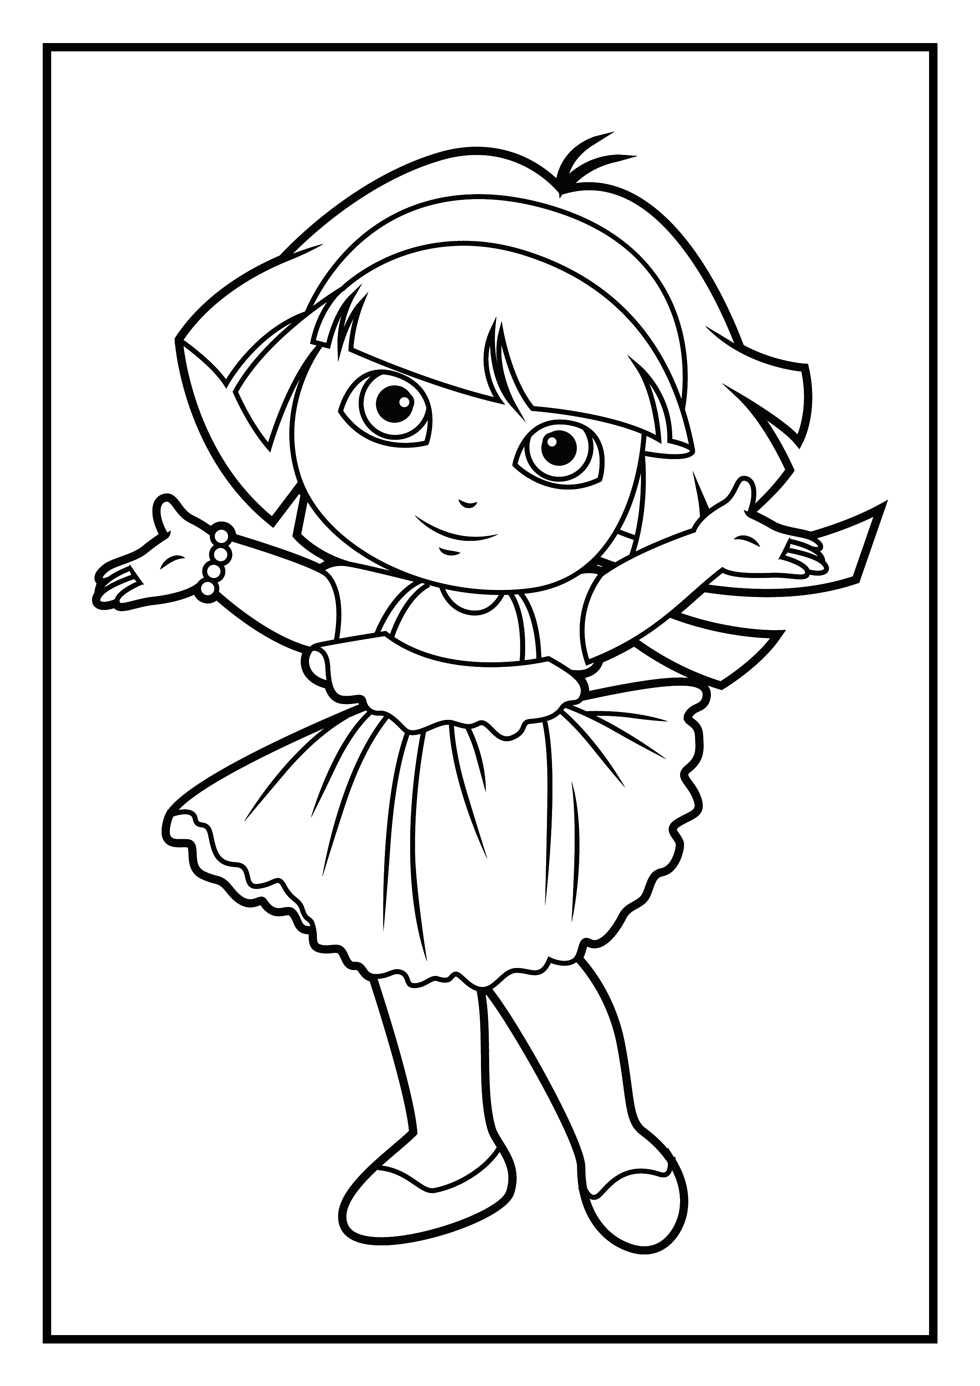 dora colouring sheet dora coloring pages diego coloring pages sheet colouring dora